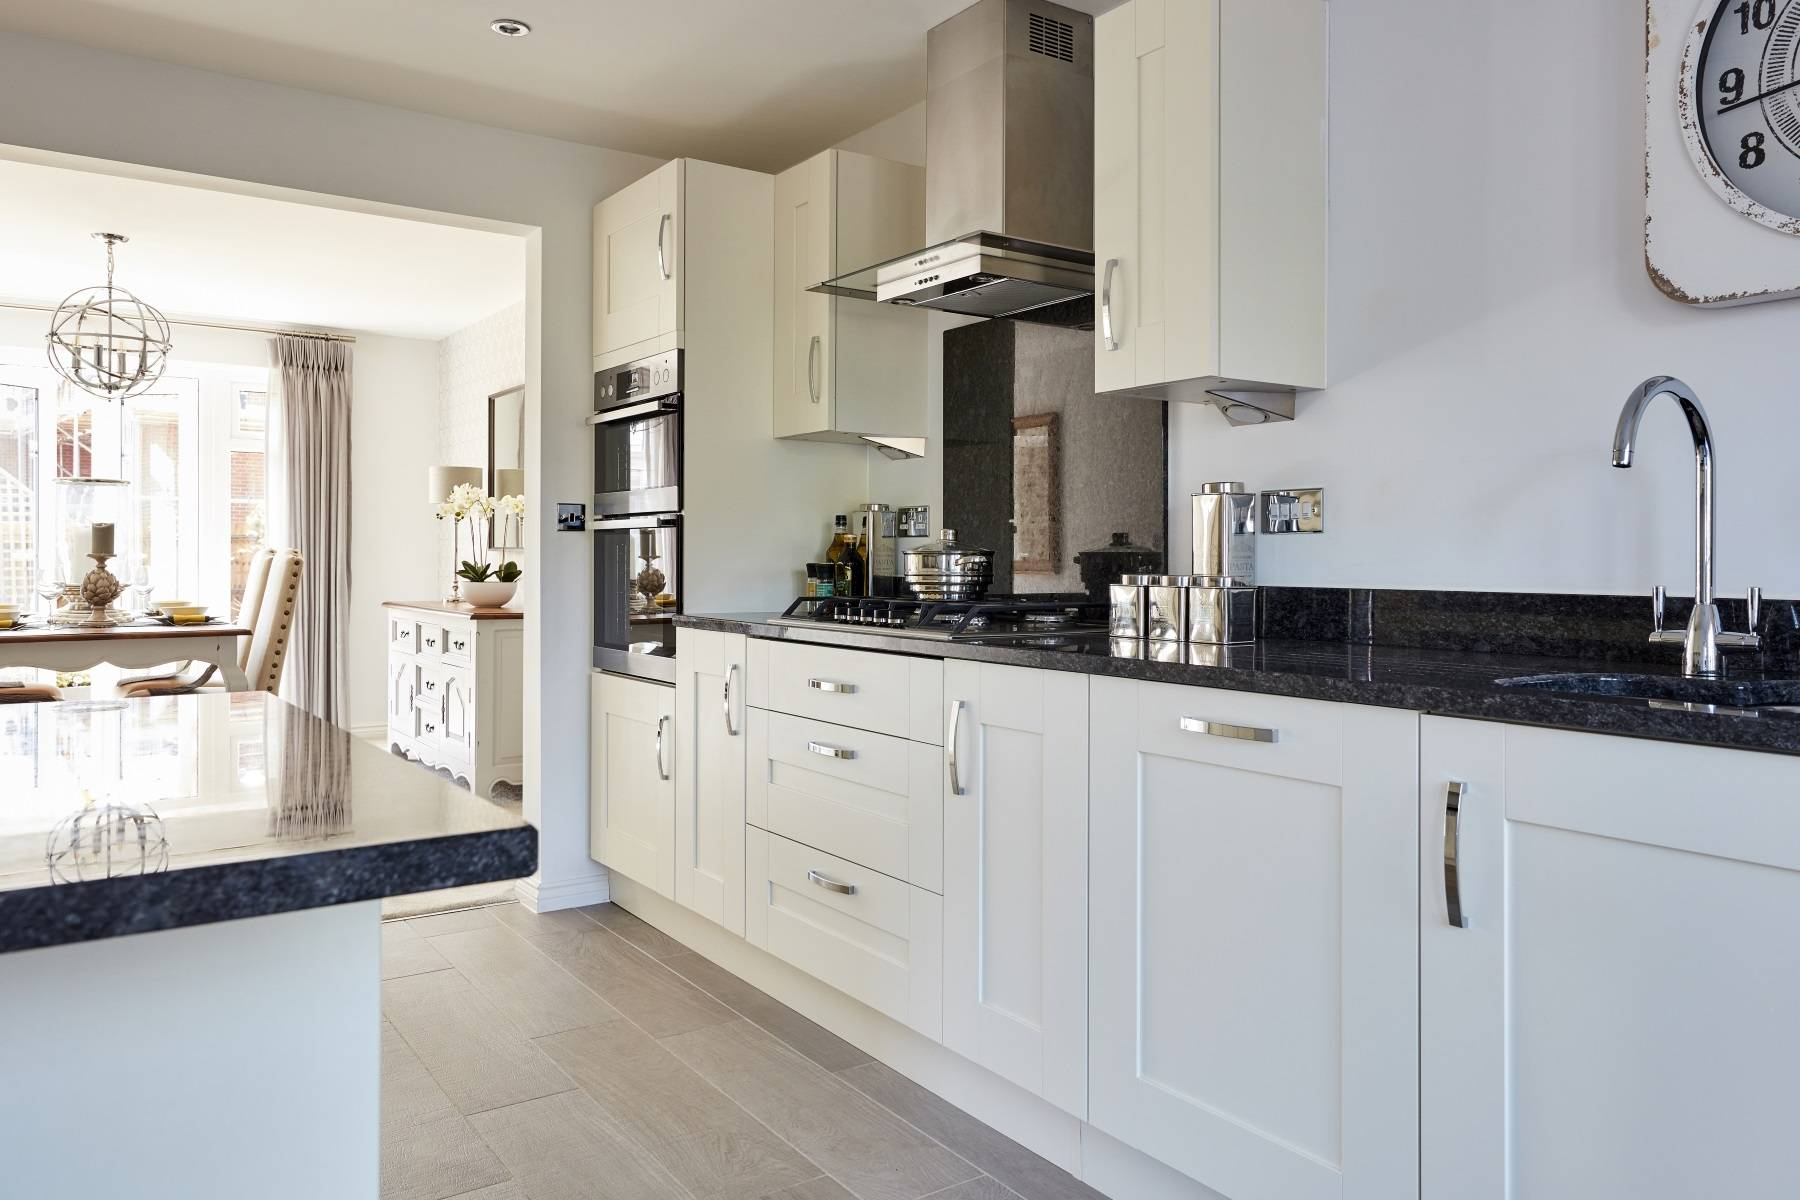 TW Exeter - Plumb Park - Dorchester example kitchen 2